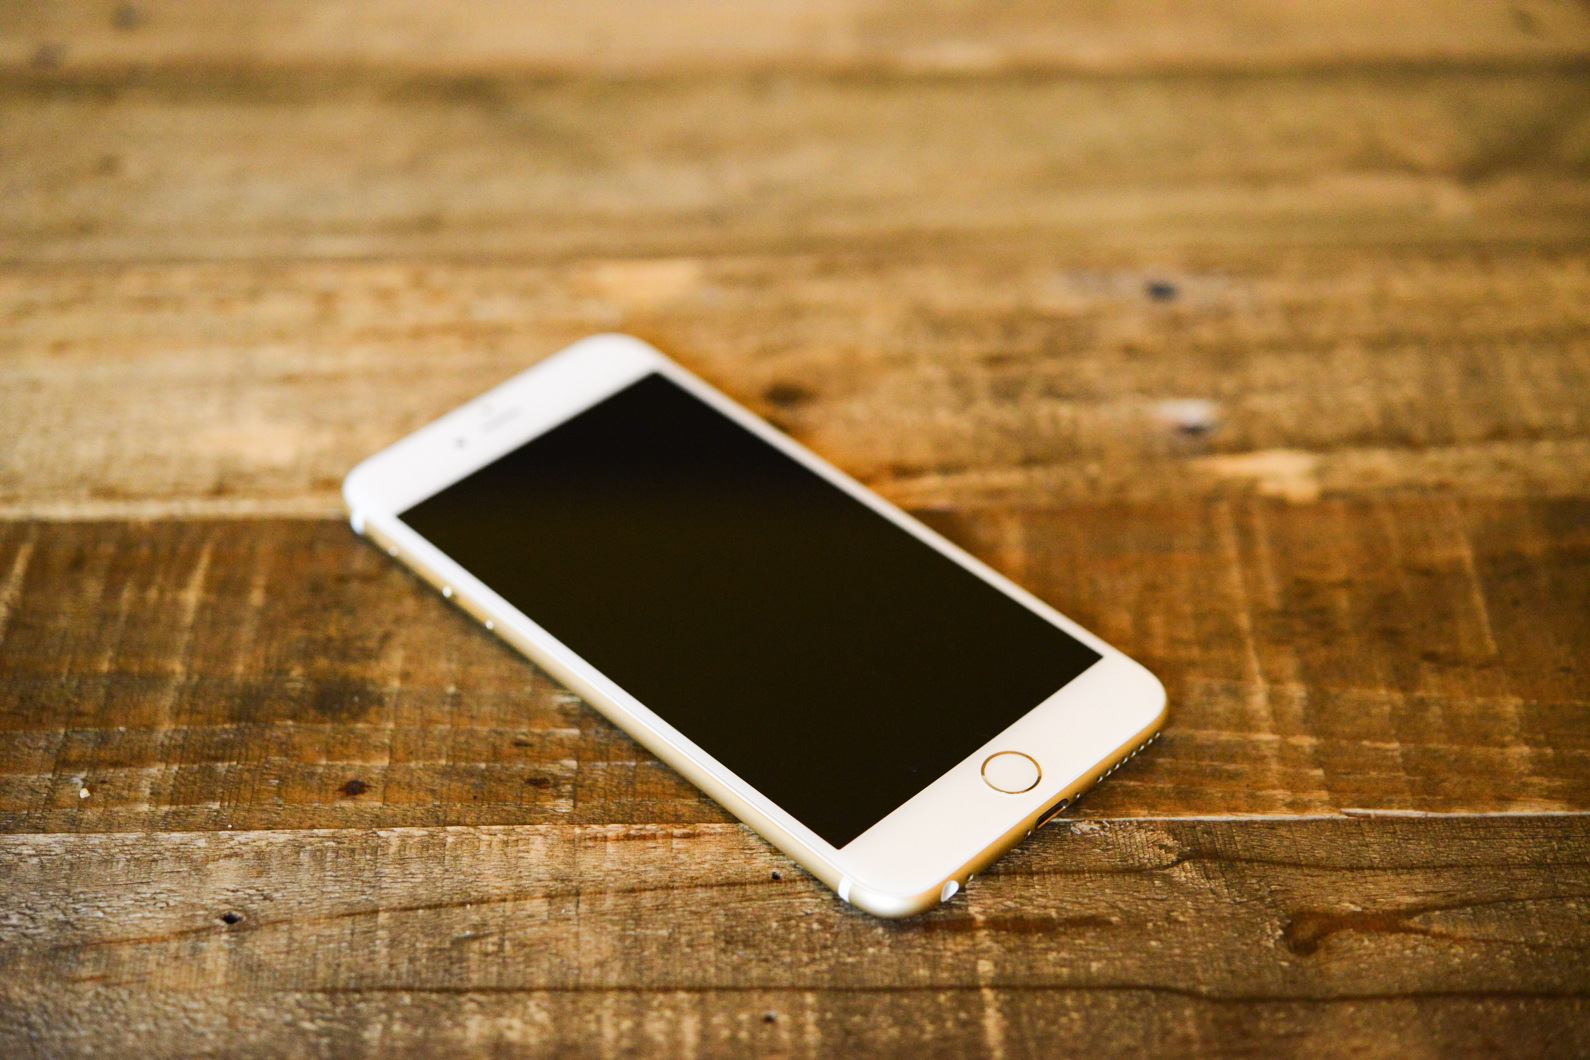 big_iphone6plus-hands-on_2719.jpg